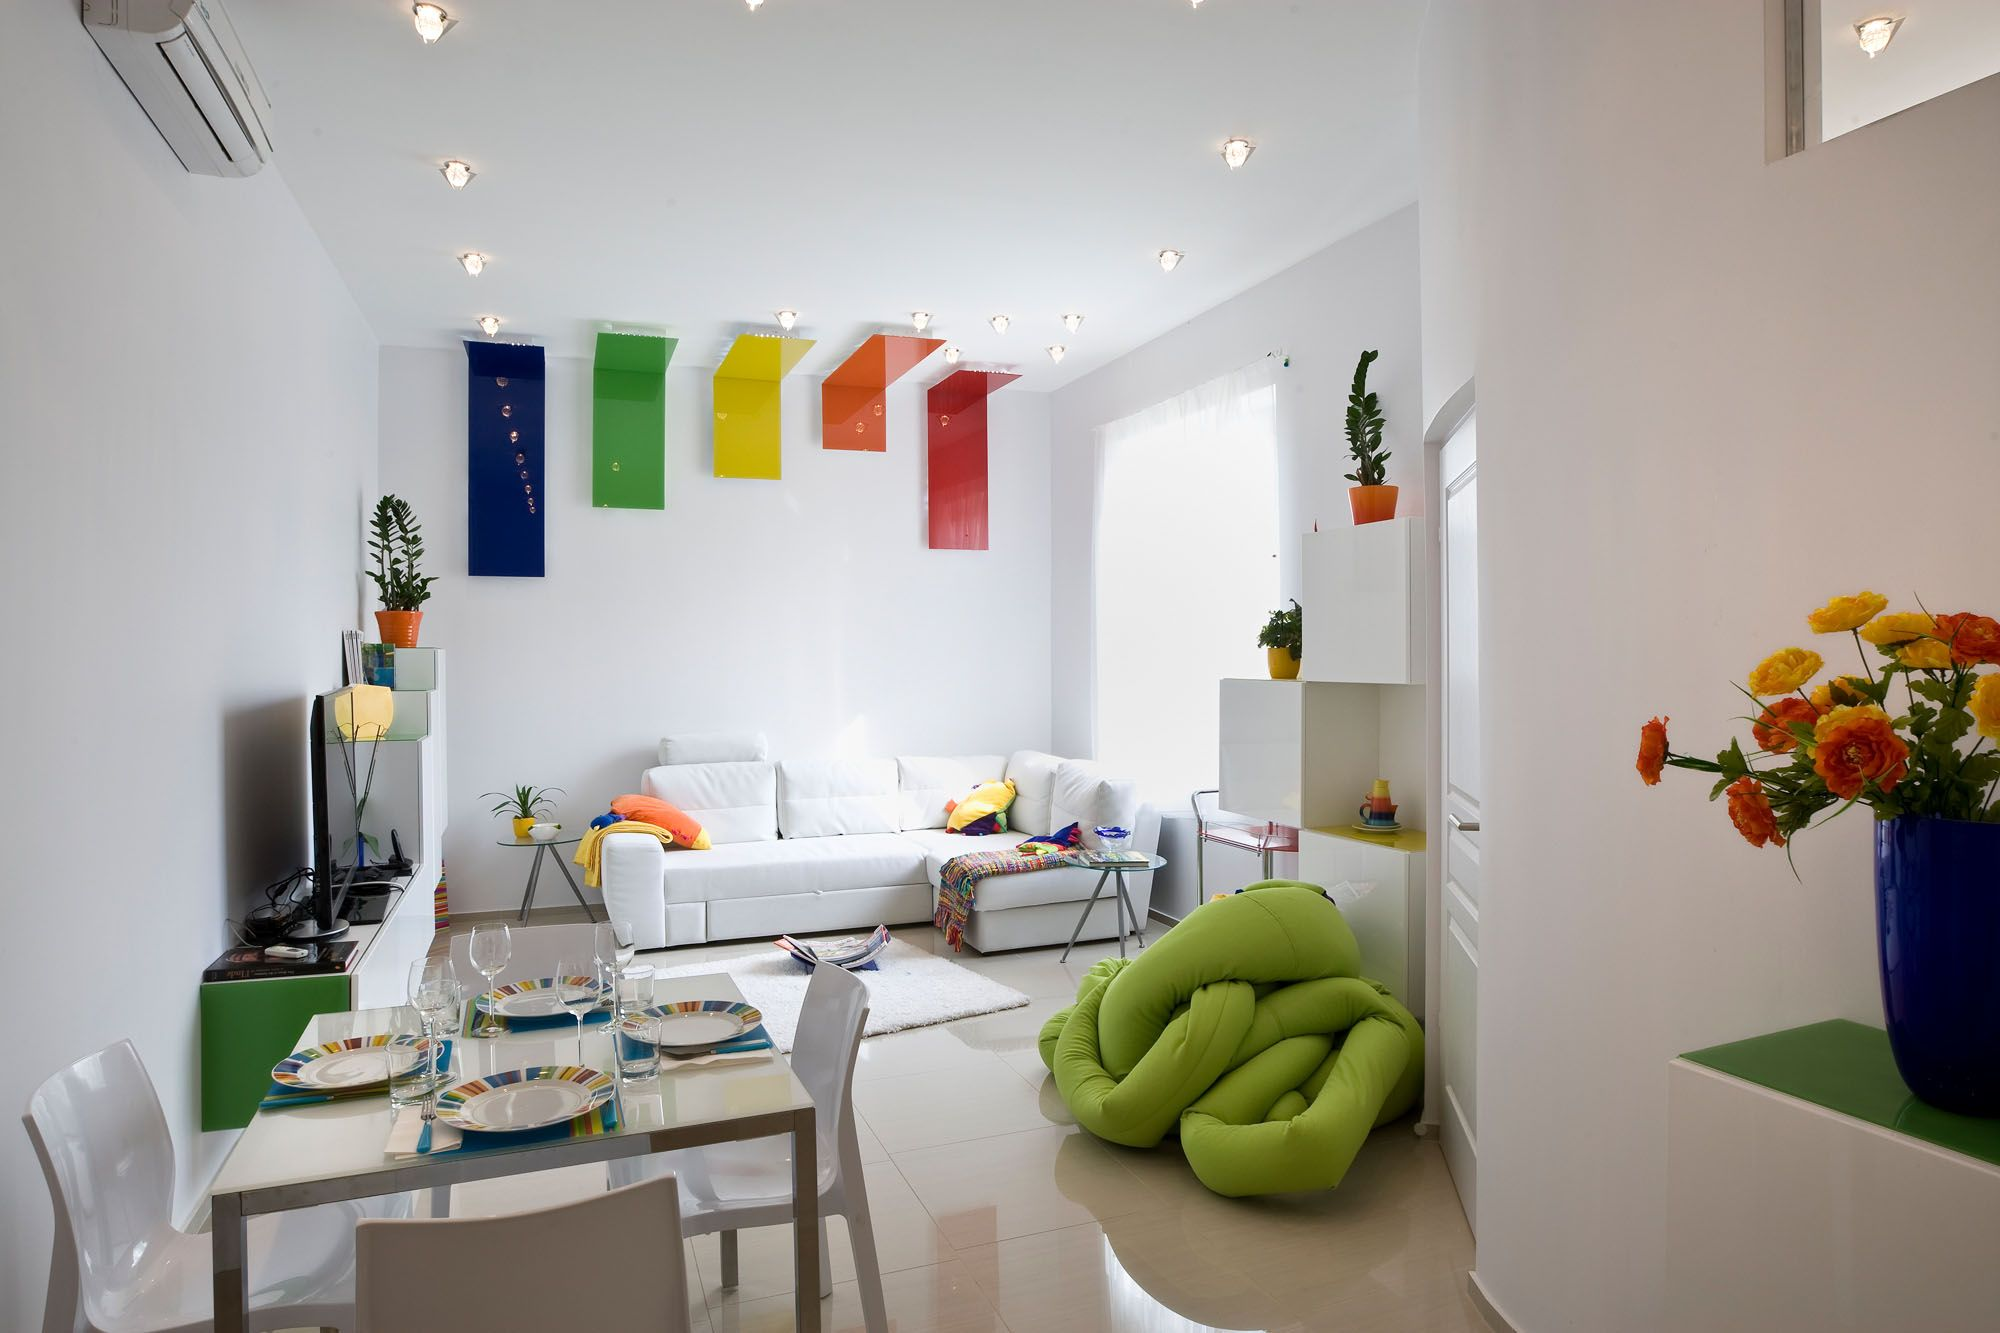 Inspirations Room Decorations Wall Color Design Ideas Interior Colorful Ornaments Striking For White Home